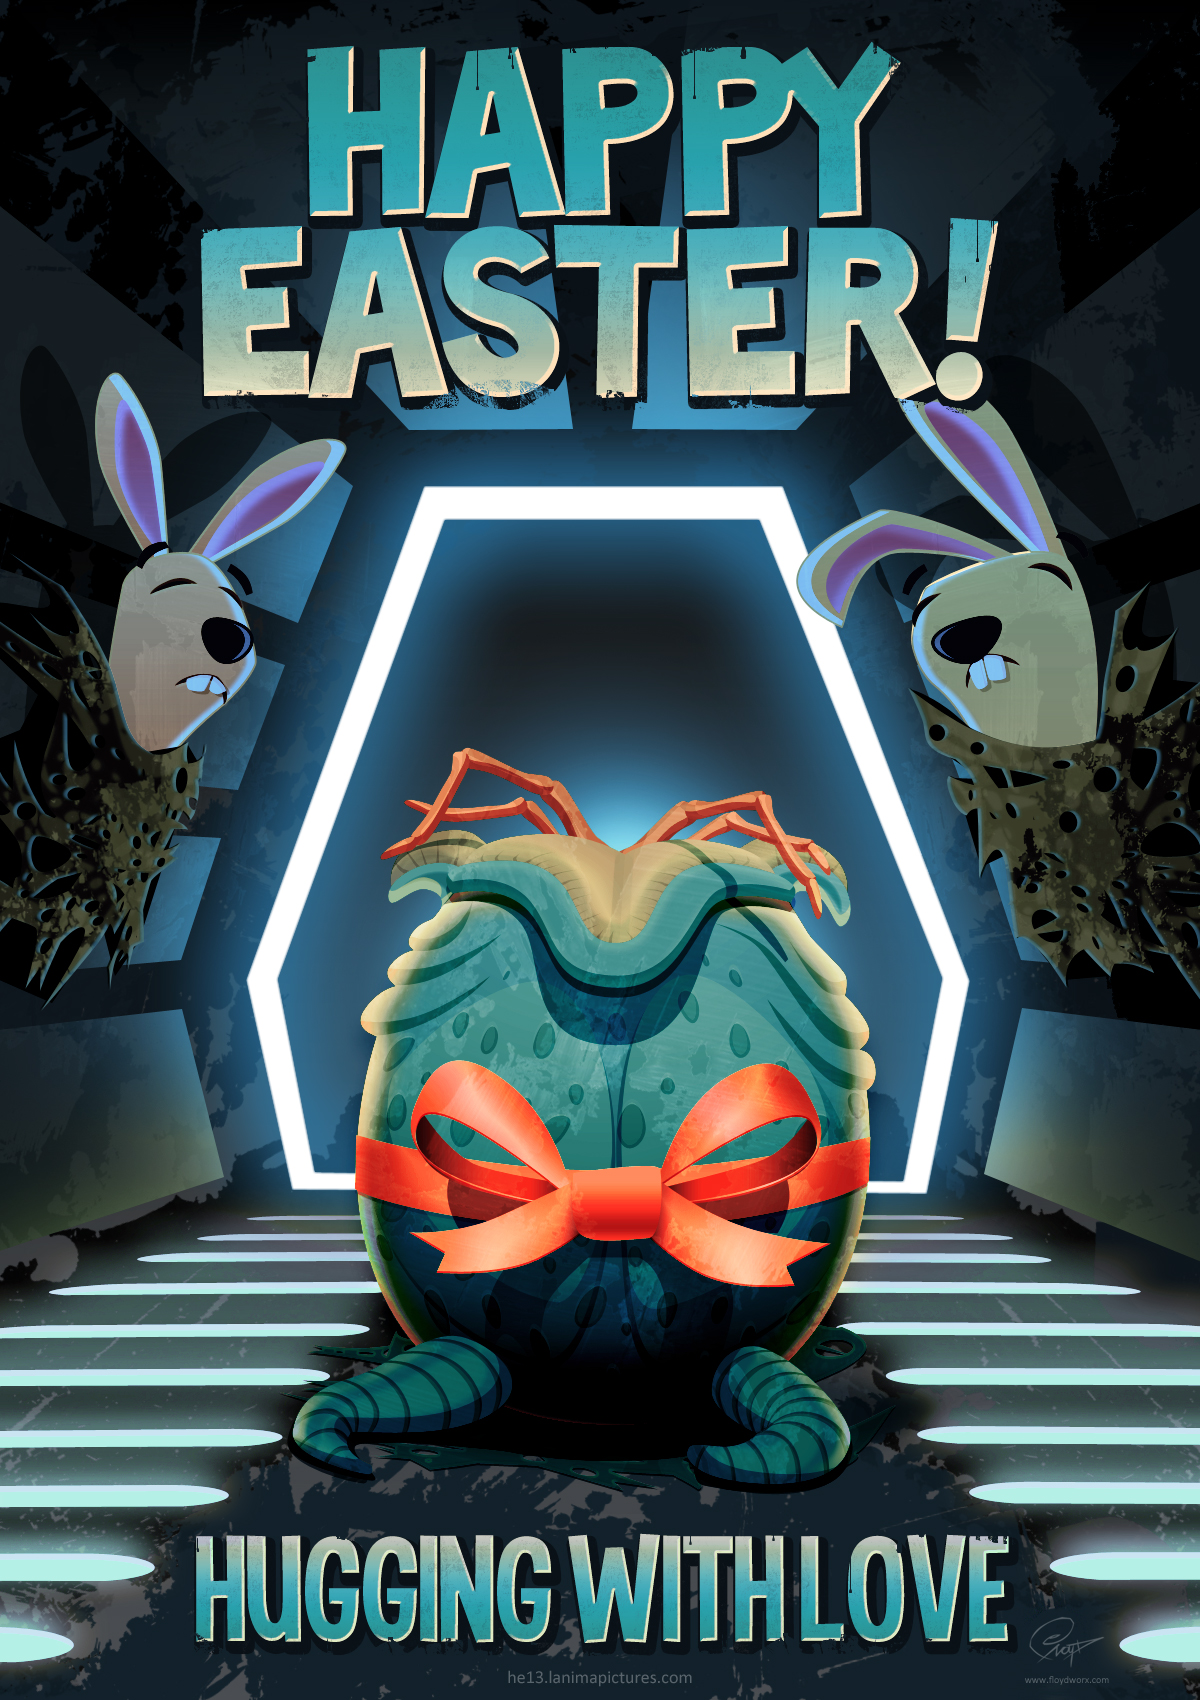 Alien easter egg by floydworx